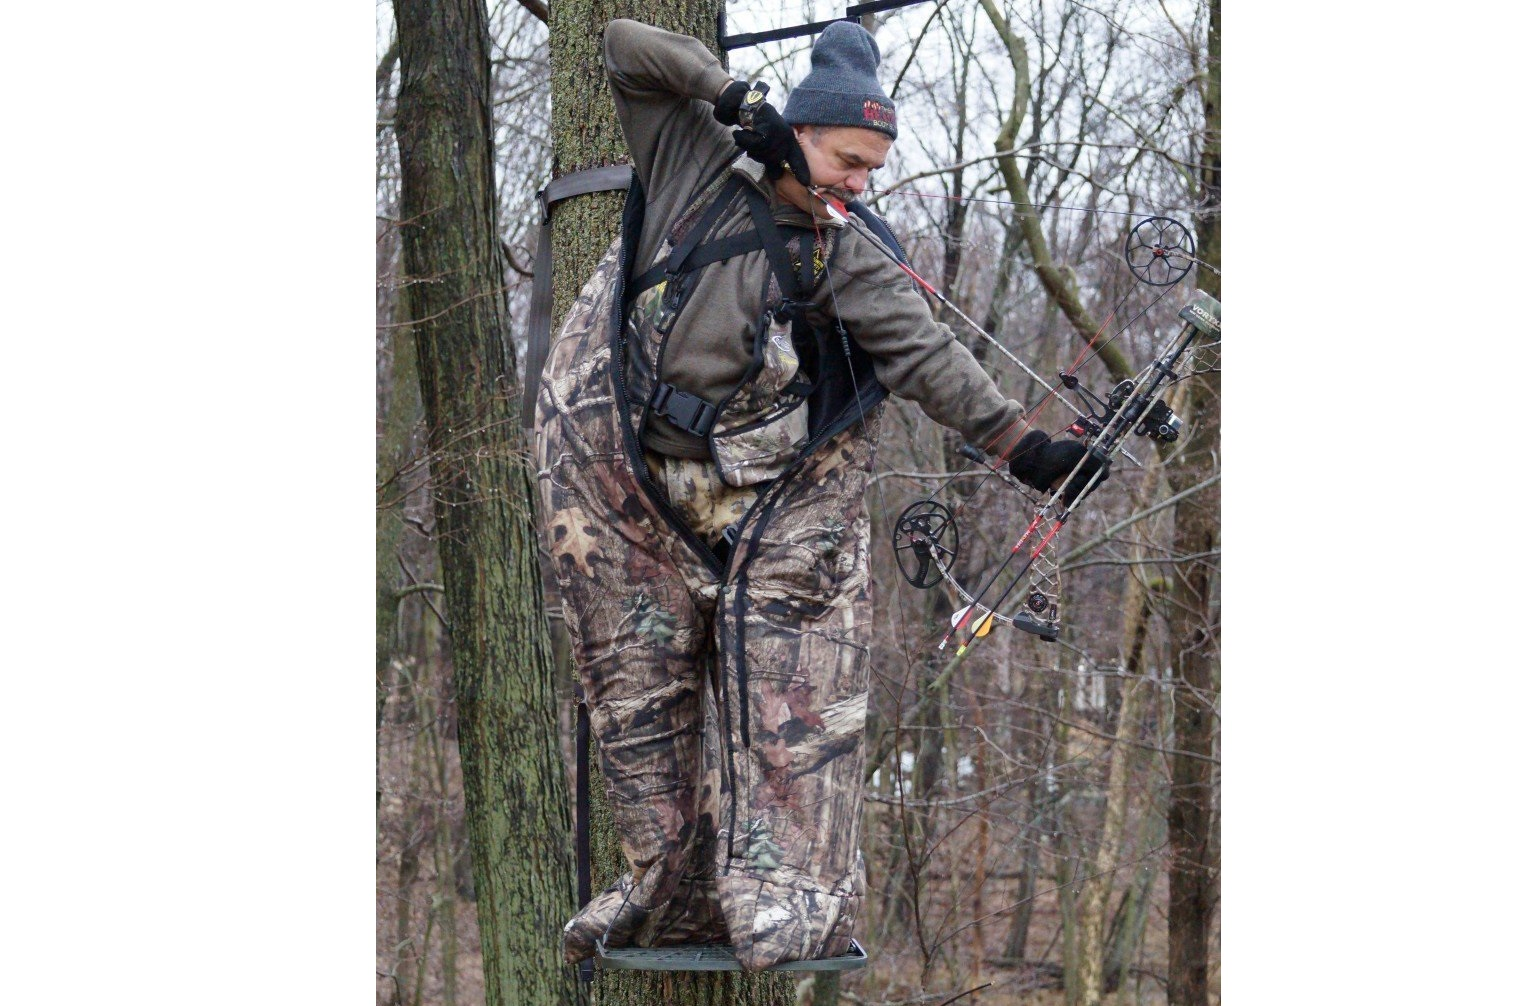 cover photo hunting out com bowhunting and precautions blind the can an elevated heater comfort of blinds during provide enclosed blog warmth season late